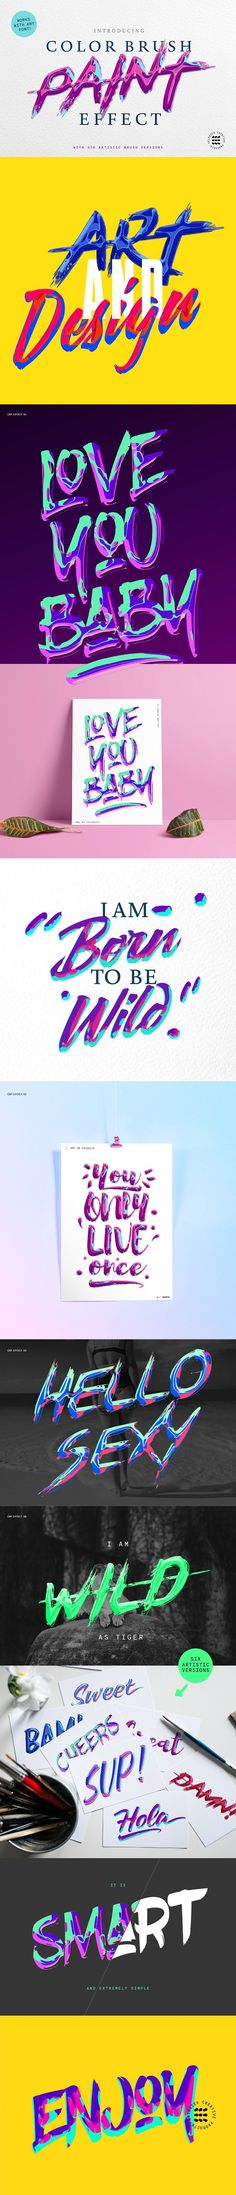 ABSTRACT PAINT TEXT EFFECTS by Evlogiev CreativeProducts on @creativemarket